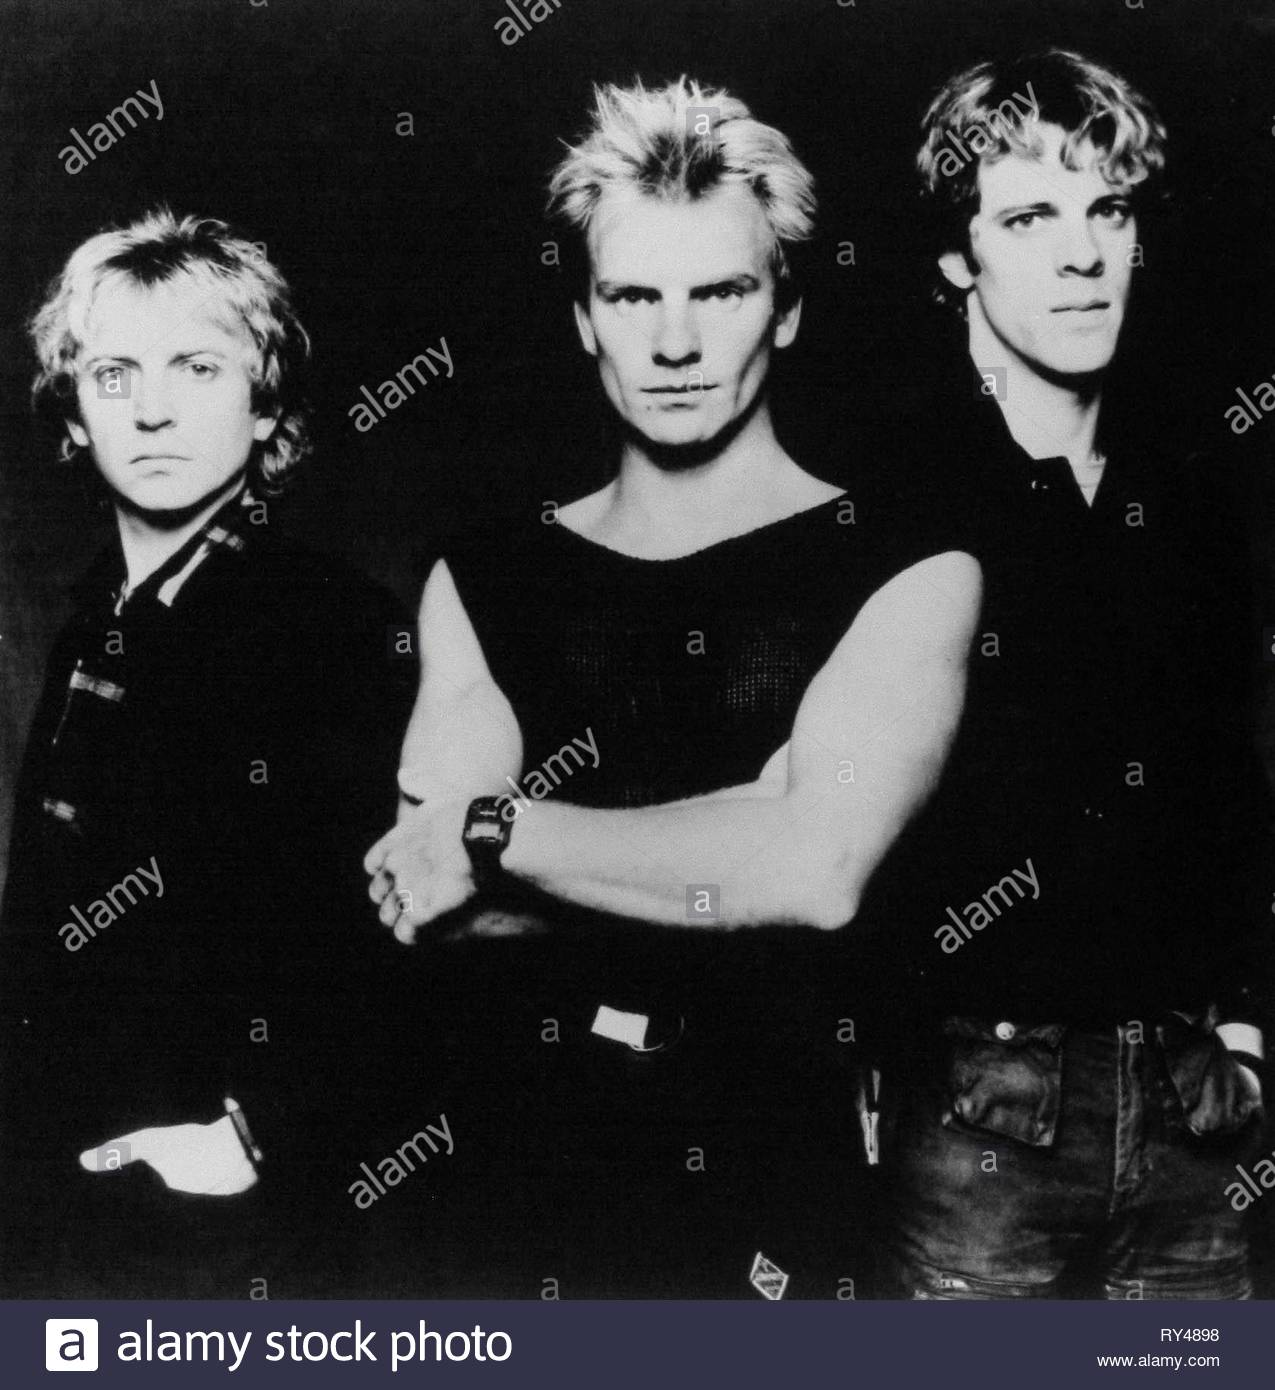 SUMMERS,STING,COPELAND, THE POLICE, 1980 - Stock Image